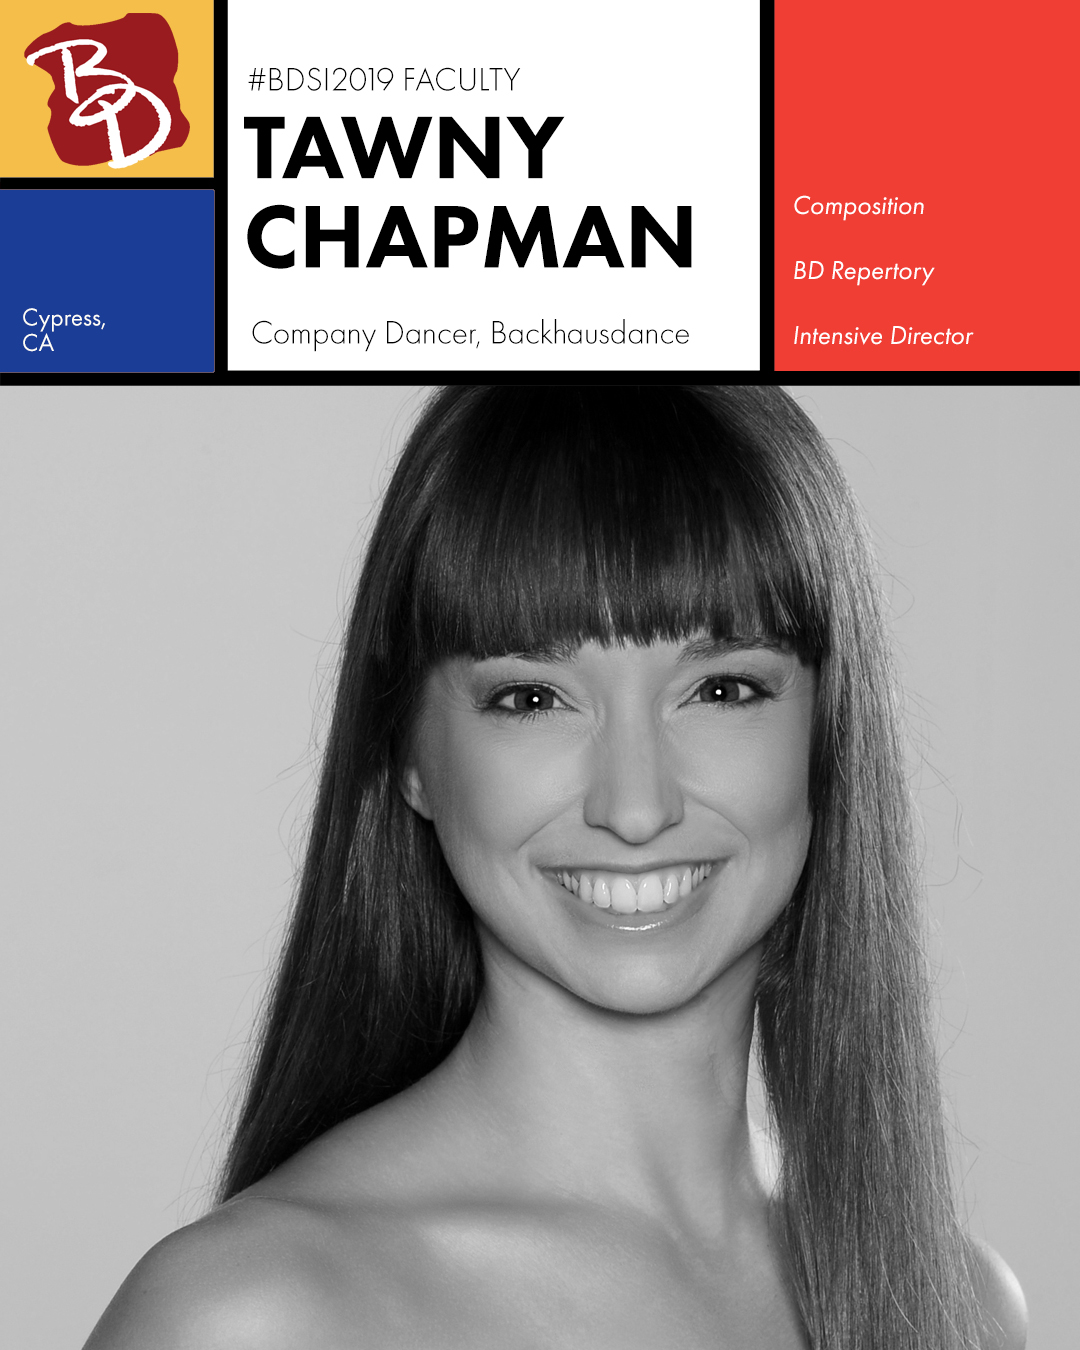 Faculty Announcement - Chapman Tawny.jpg